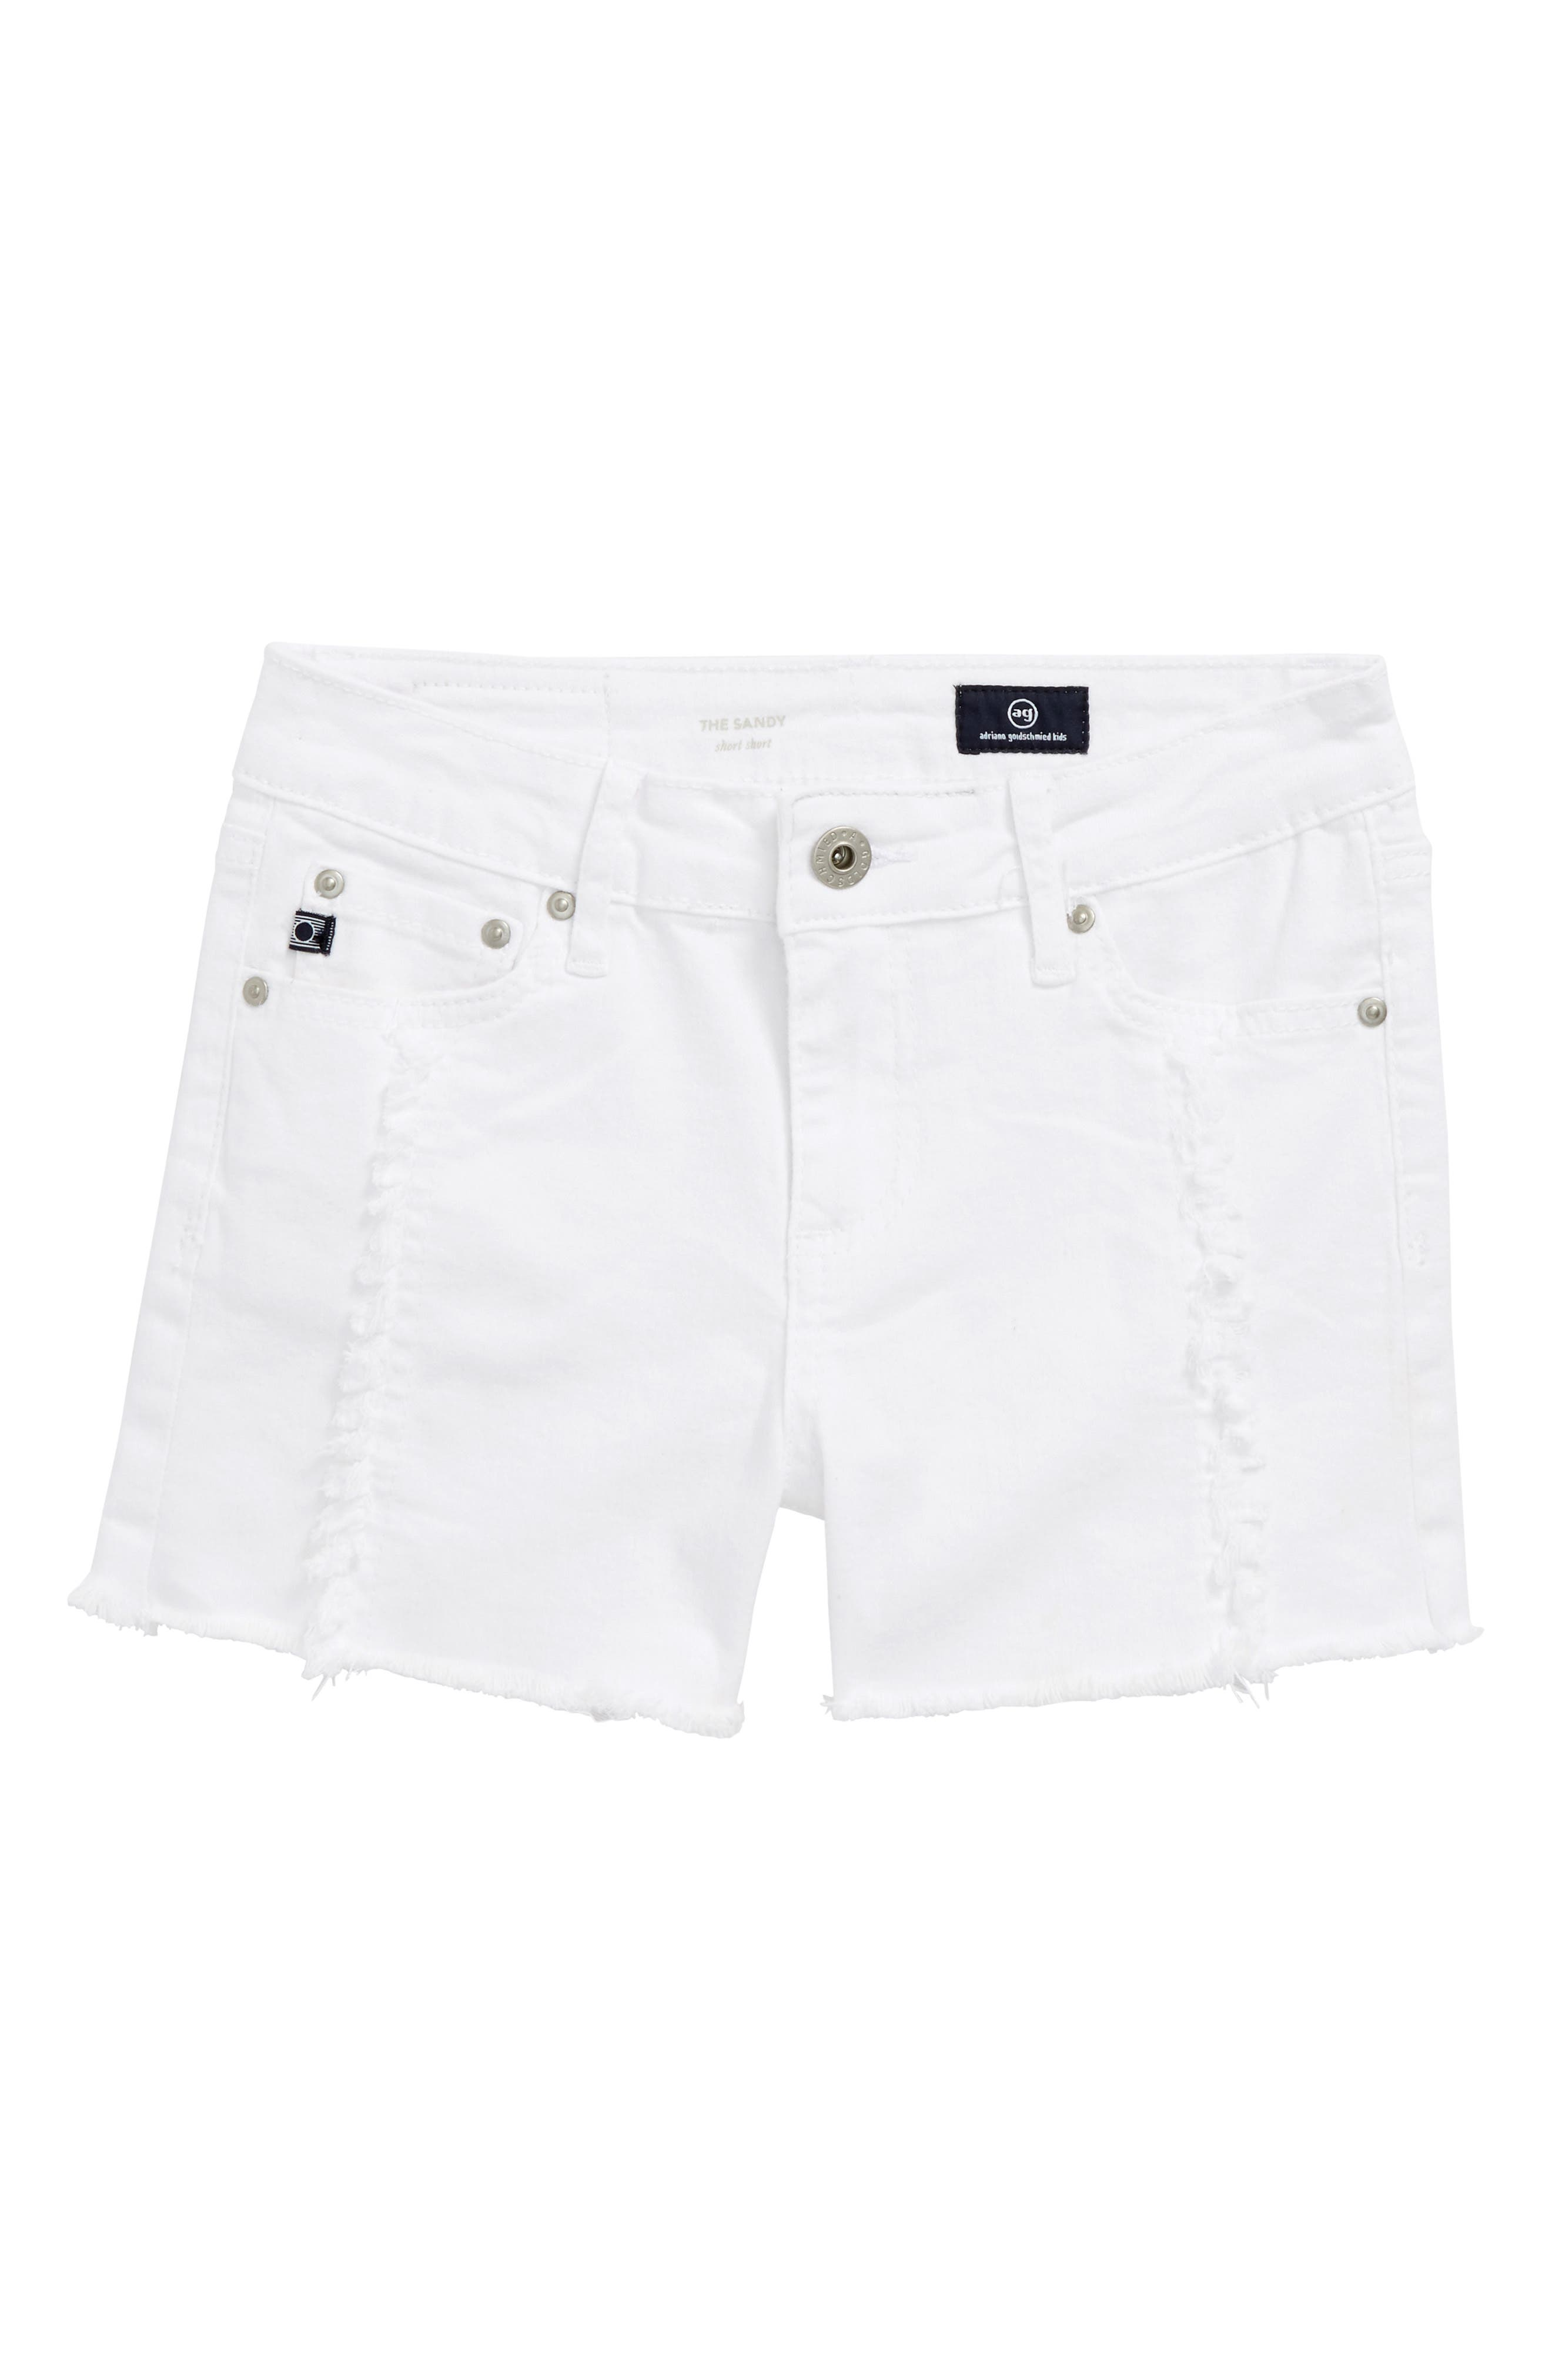 AG The Sandy Shorts,                         Main,                         color, White